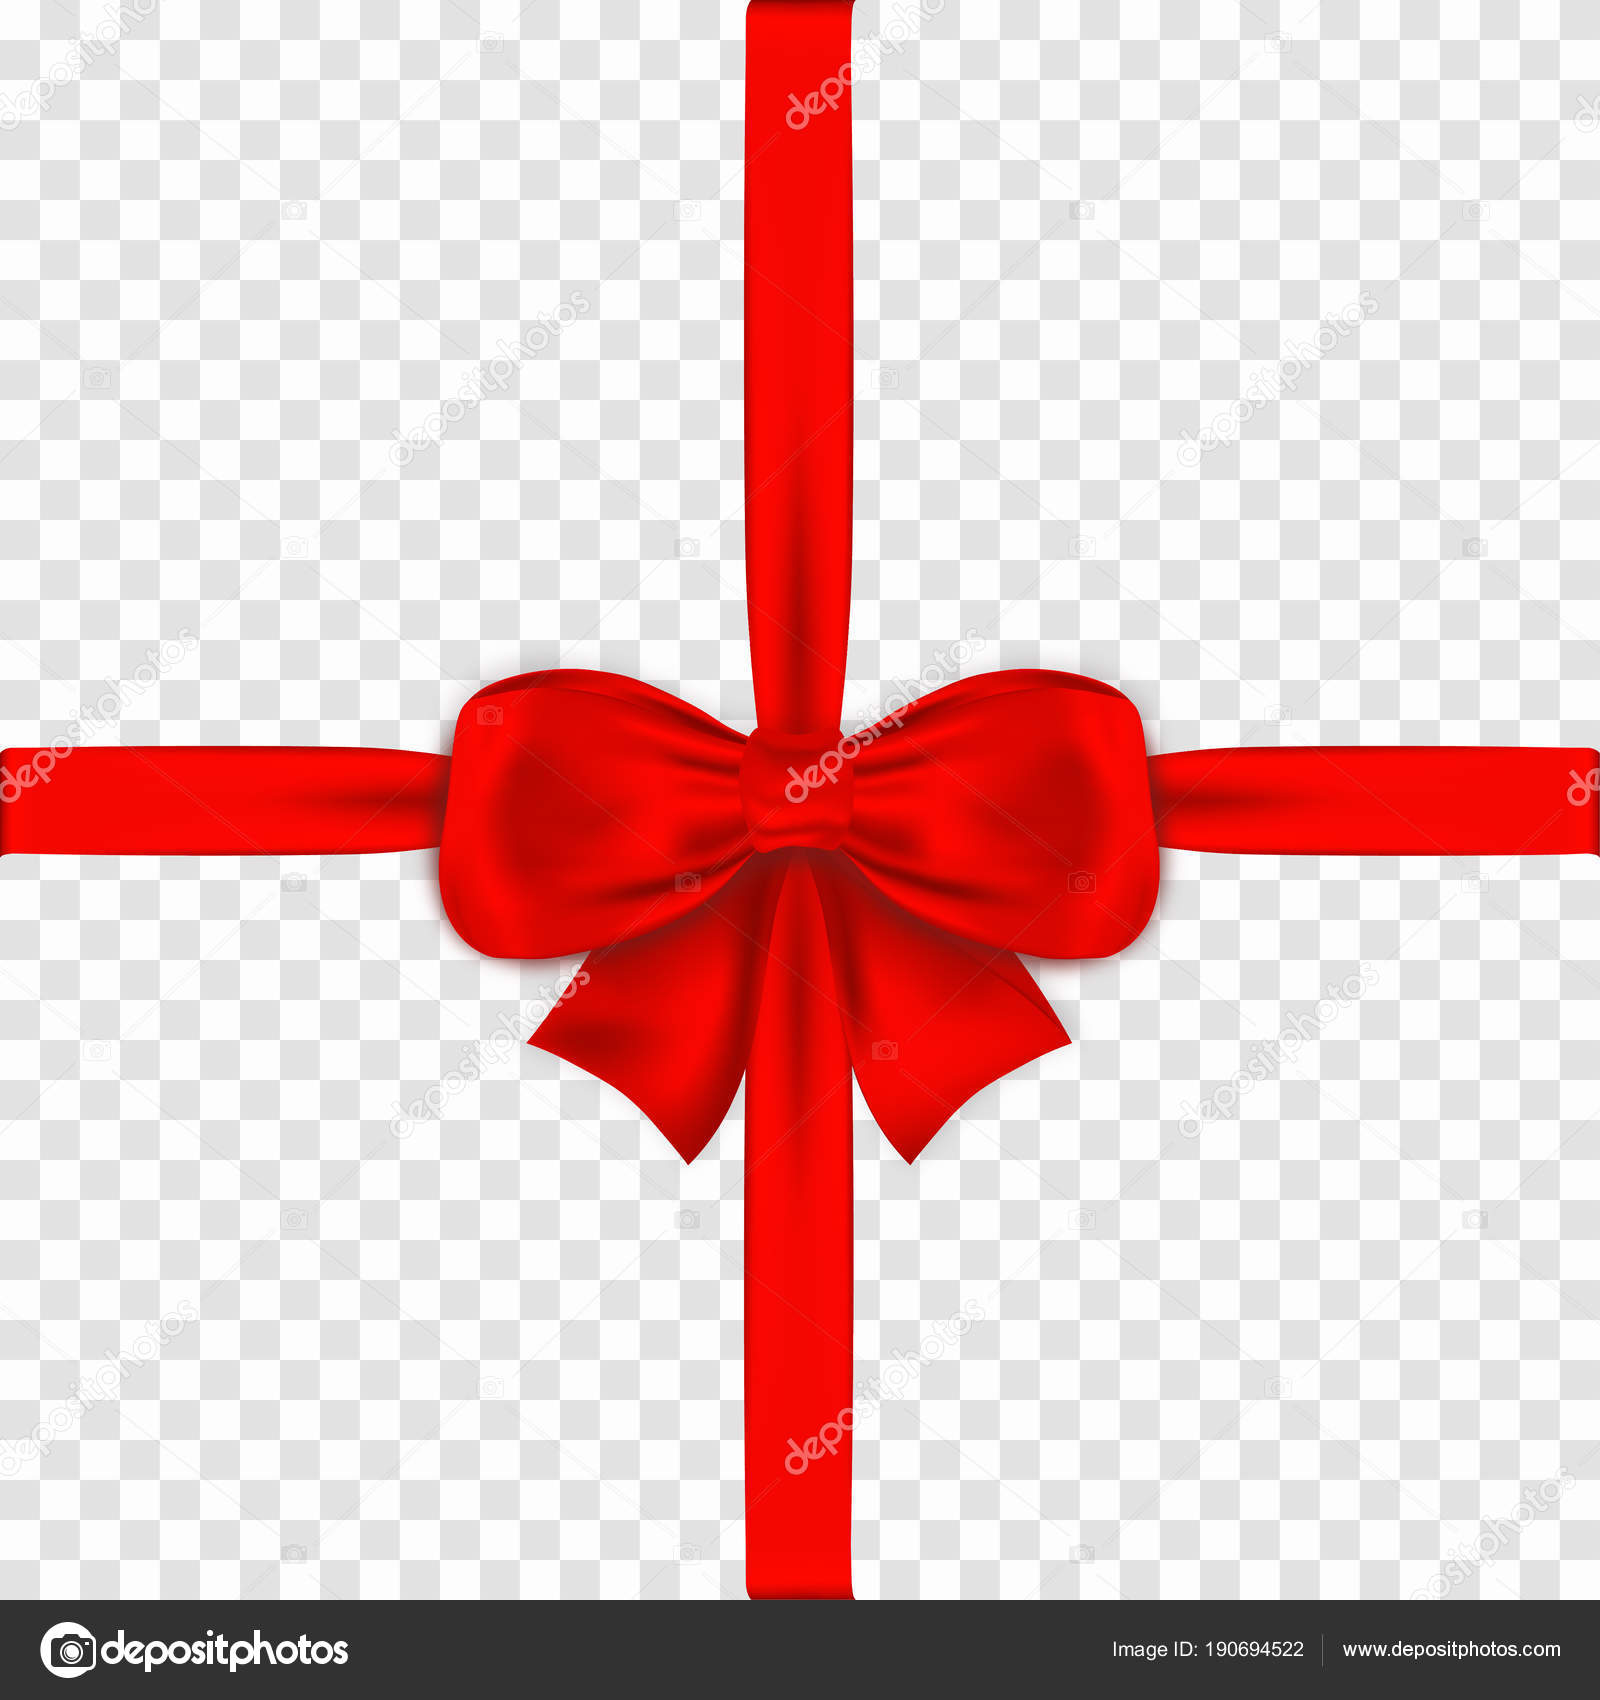 Red bow with ribbons on transparent background realistic satin gift red bow with ribbons on transparent background realistic satin gift bow with knot stock negle Gallery